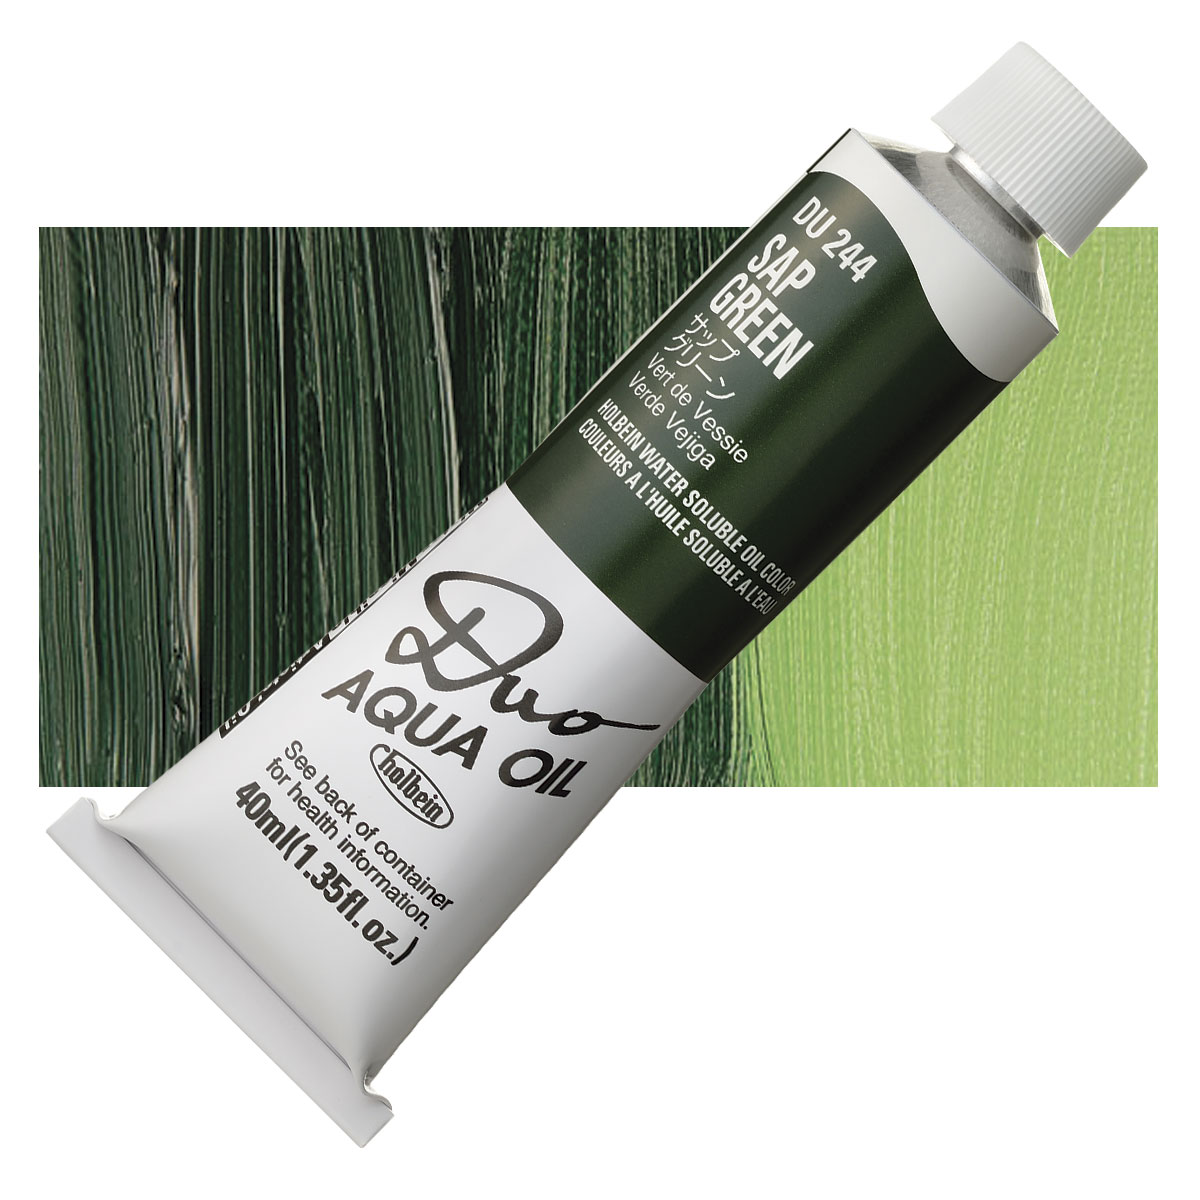 Holbein Duo Aqua Water Soluble Oil Paints and Sets